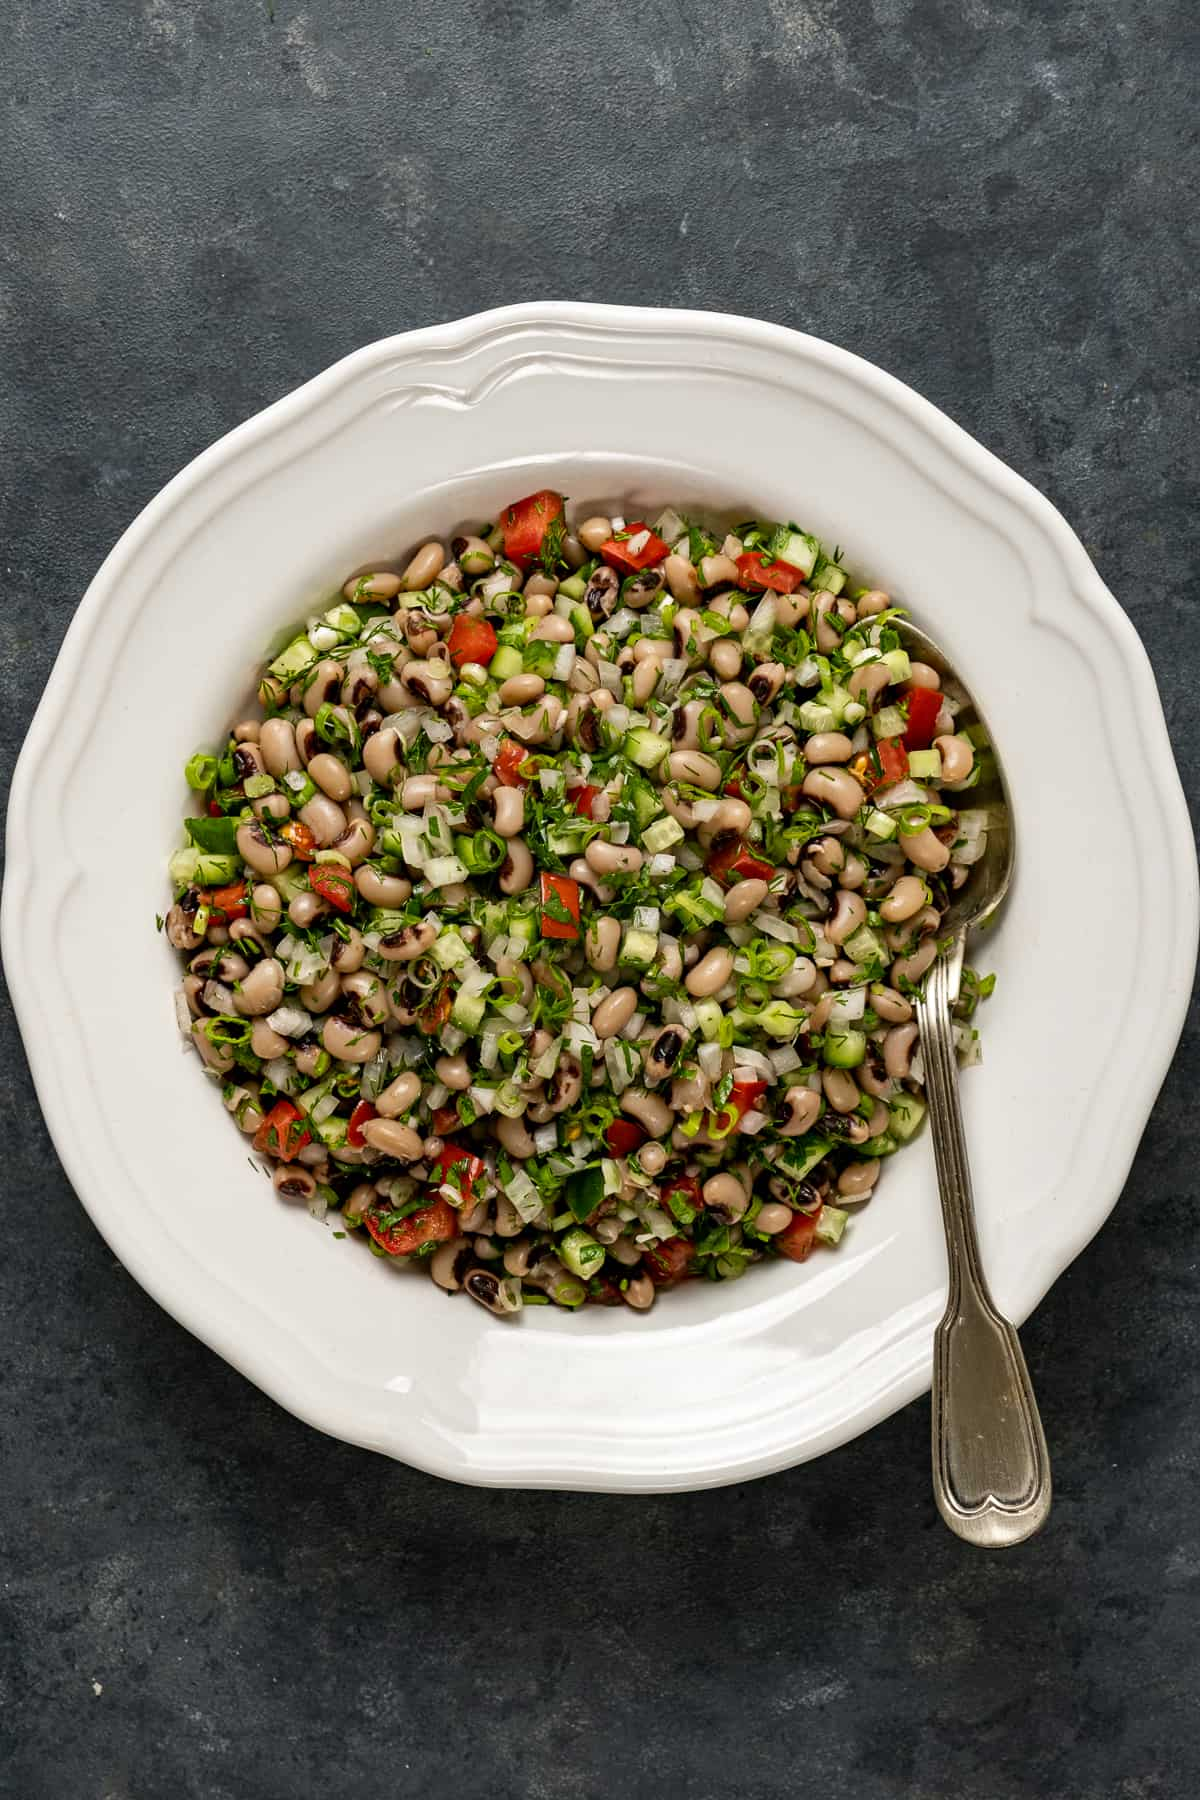 Black eyed pea salad in a white bowl with a spoon inside it.